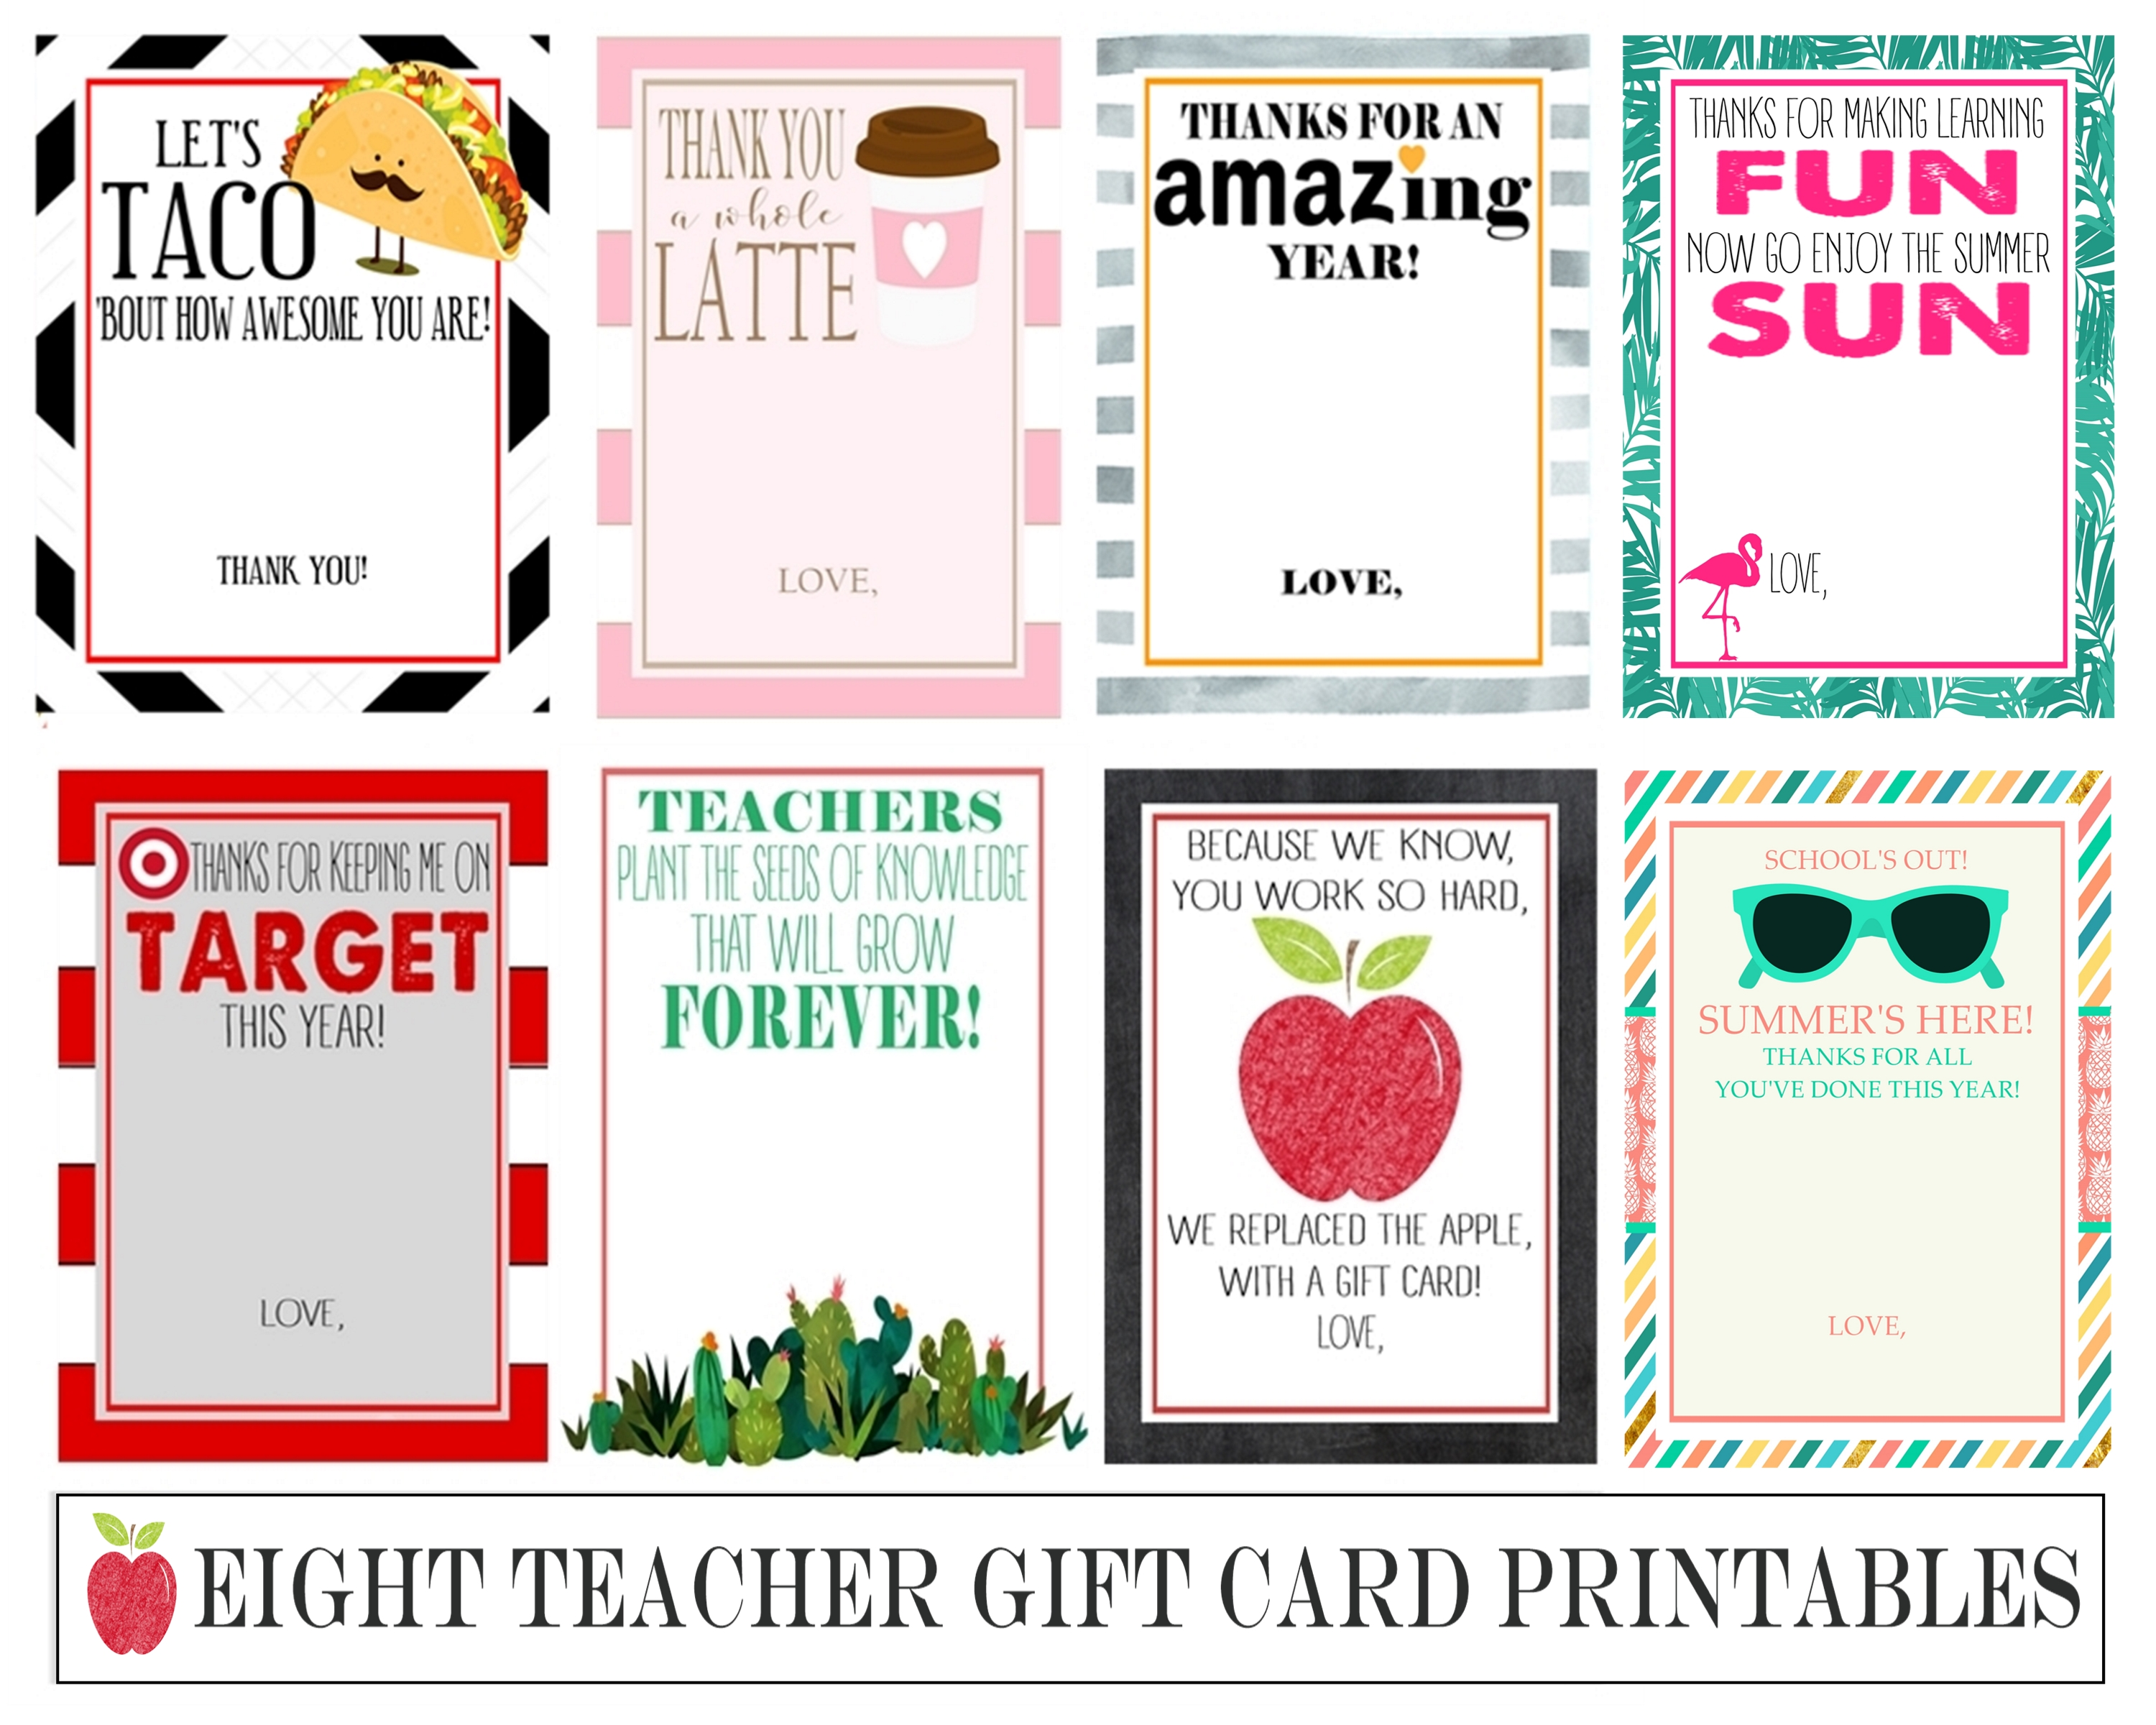 photo regarding Teacher Appreciation Card Printable referred to as 8 Fast Down load Instructor Reward Card Printables - Crisp